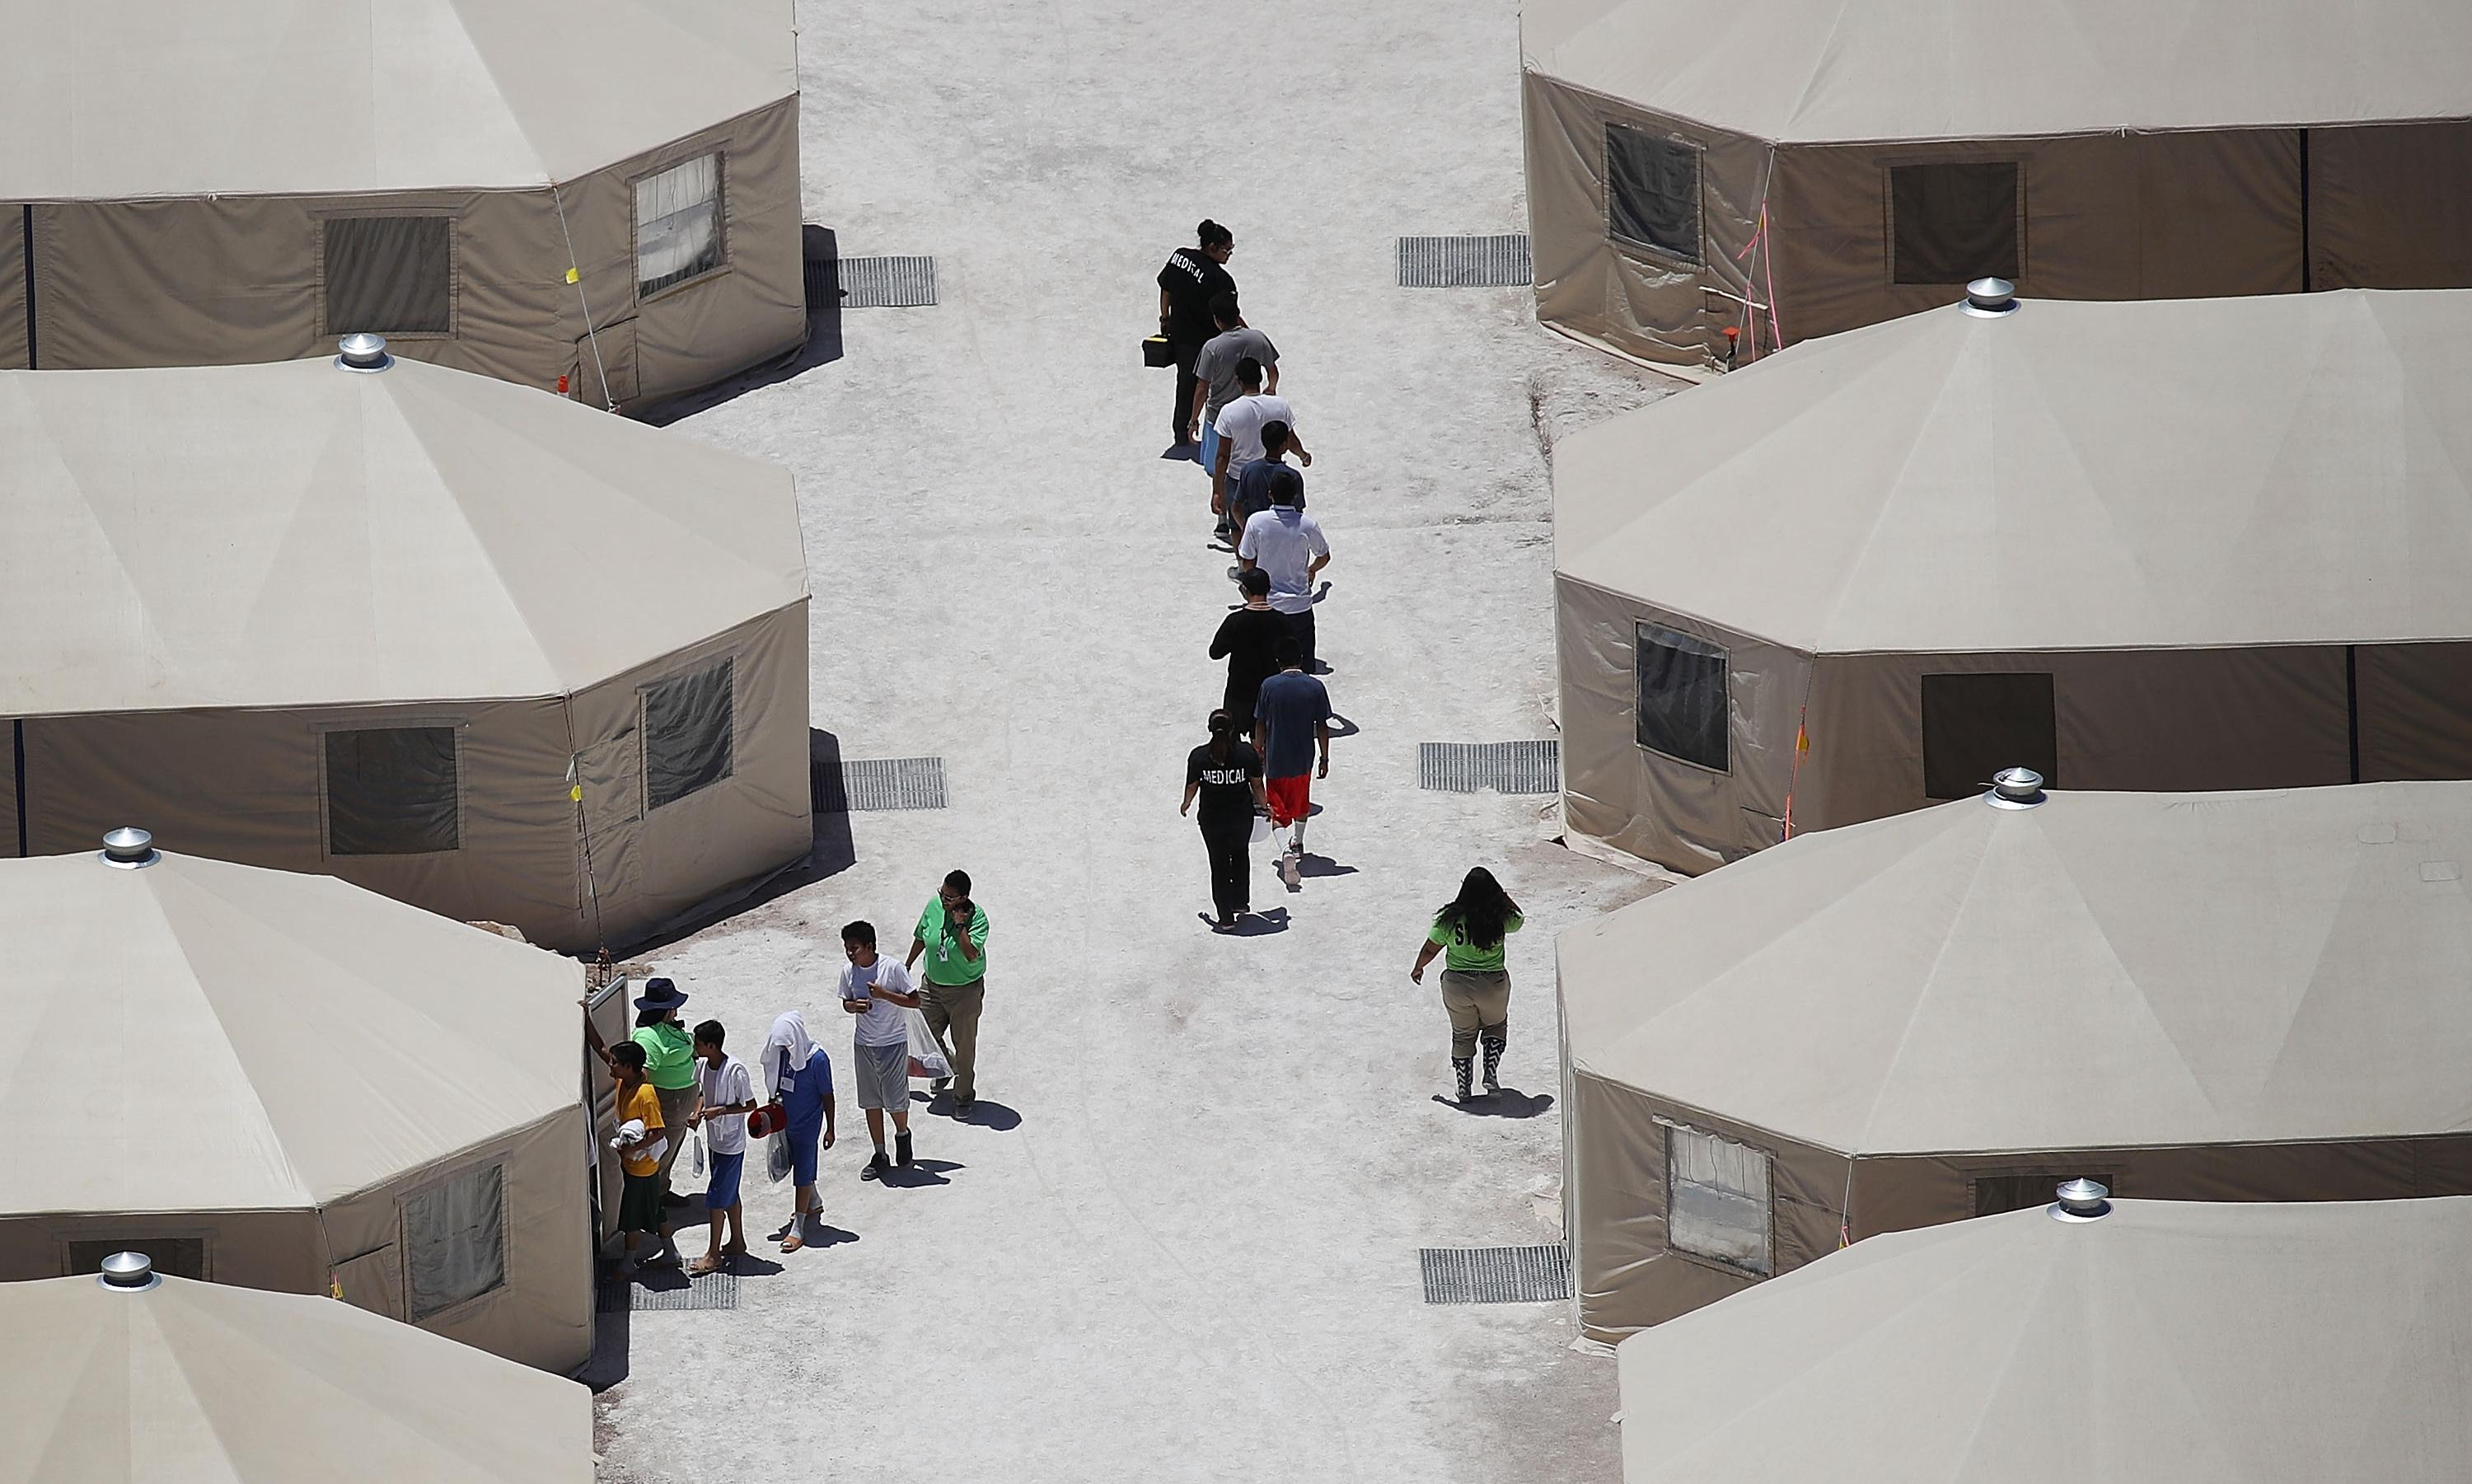 'A dangerous precedent': Texans outraged at prospect of tent cities for migrants